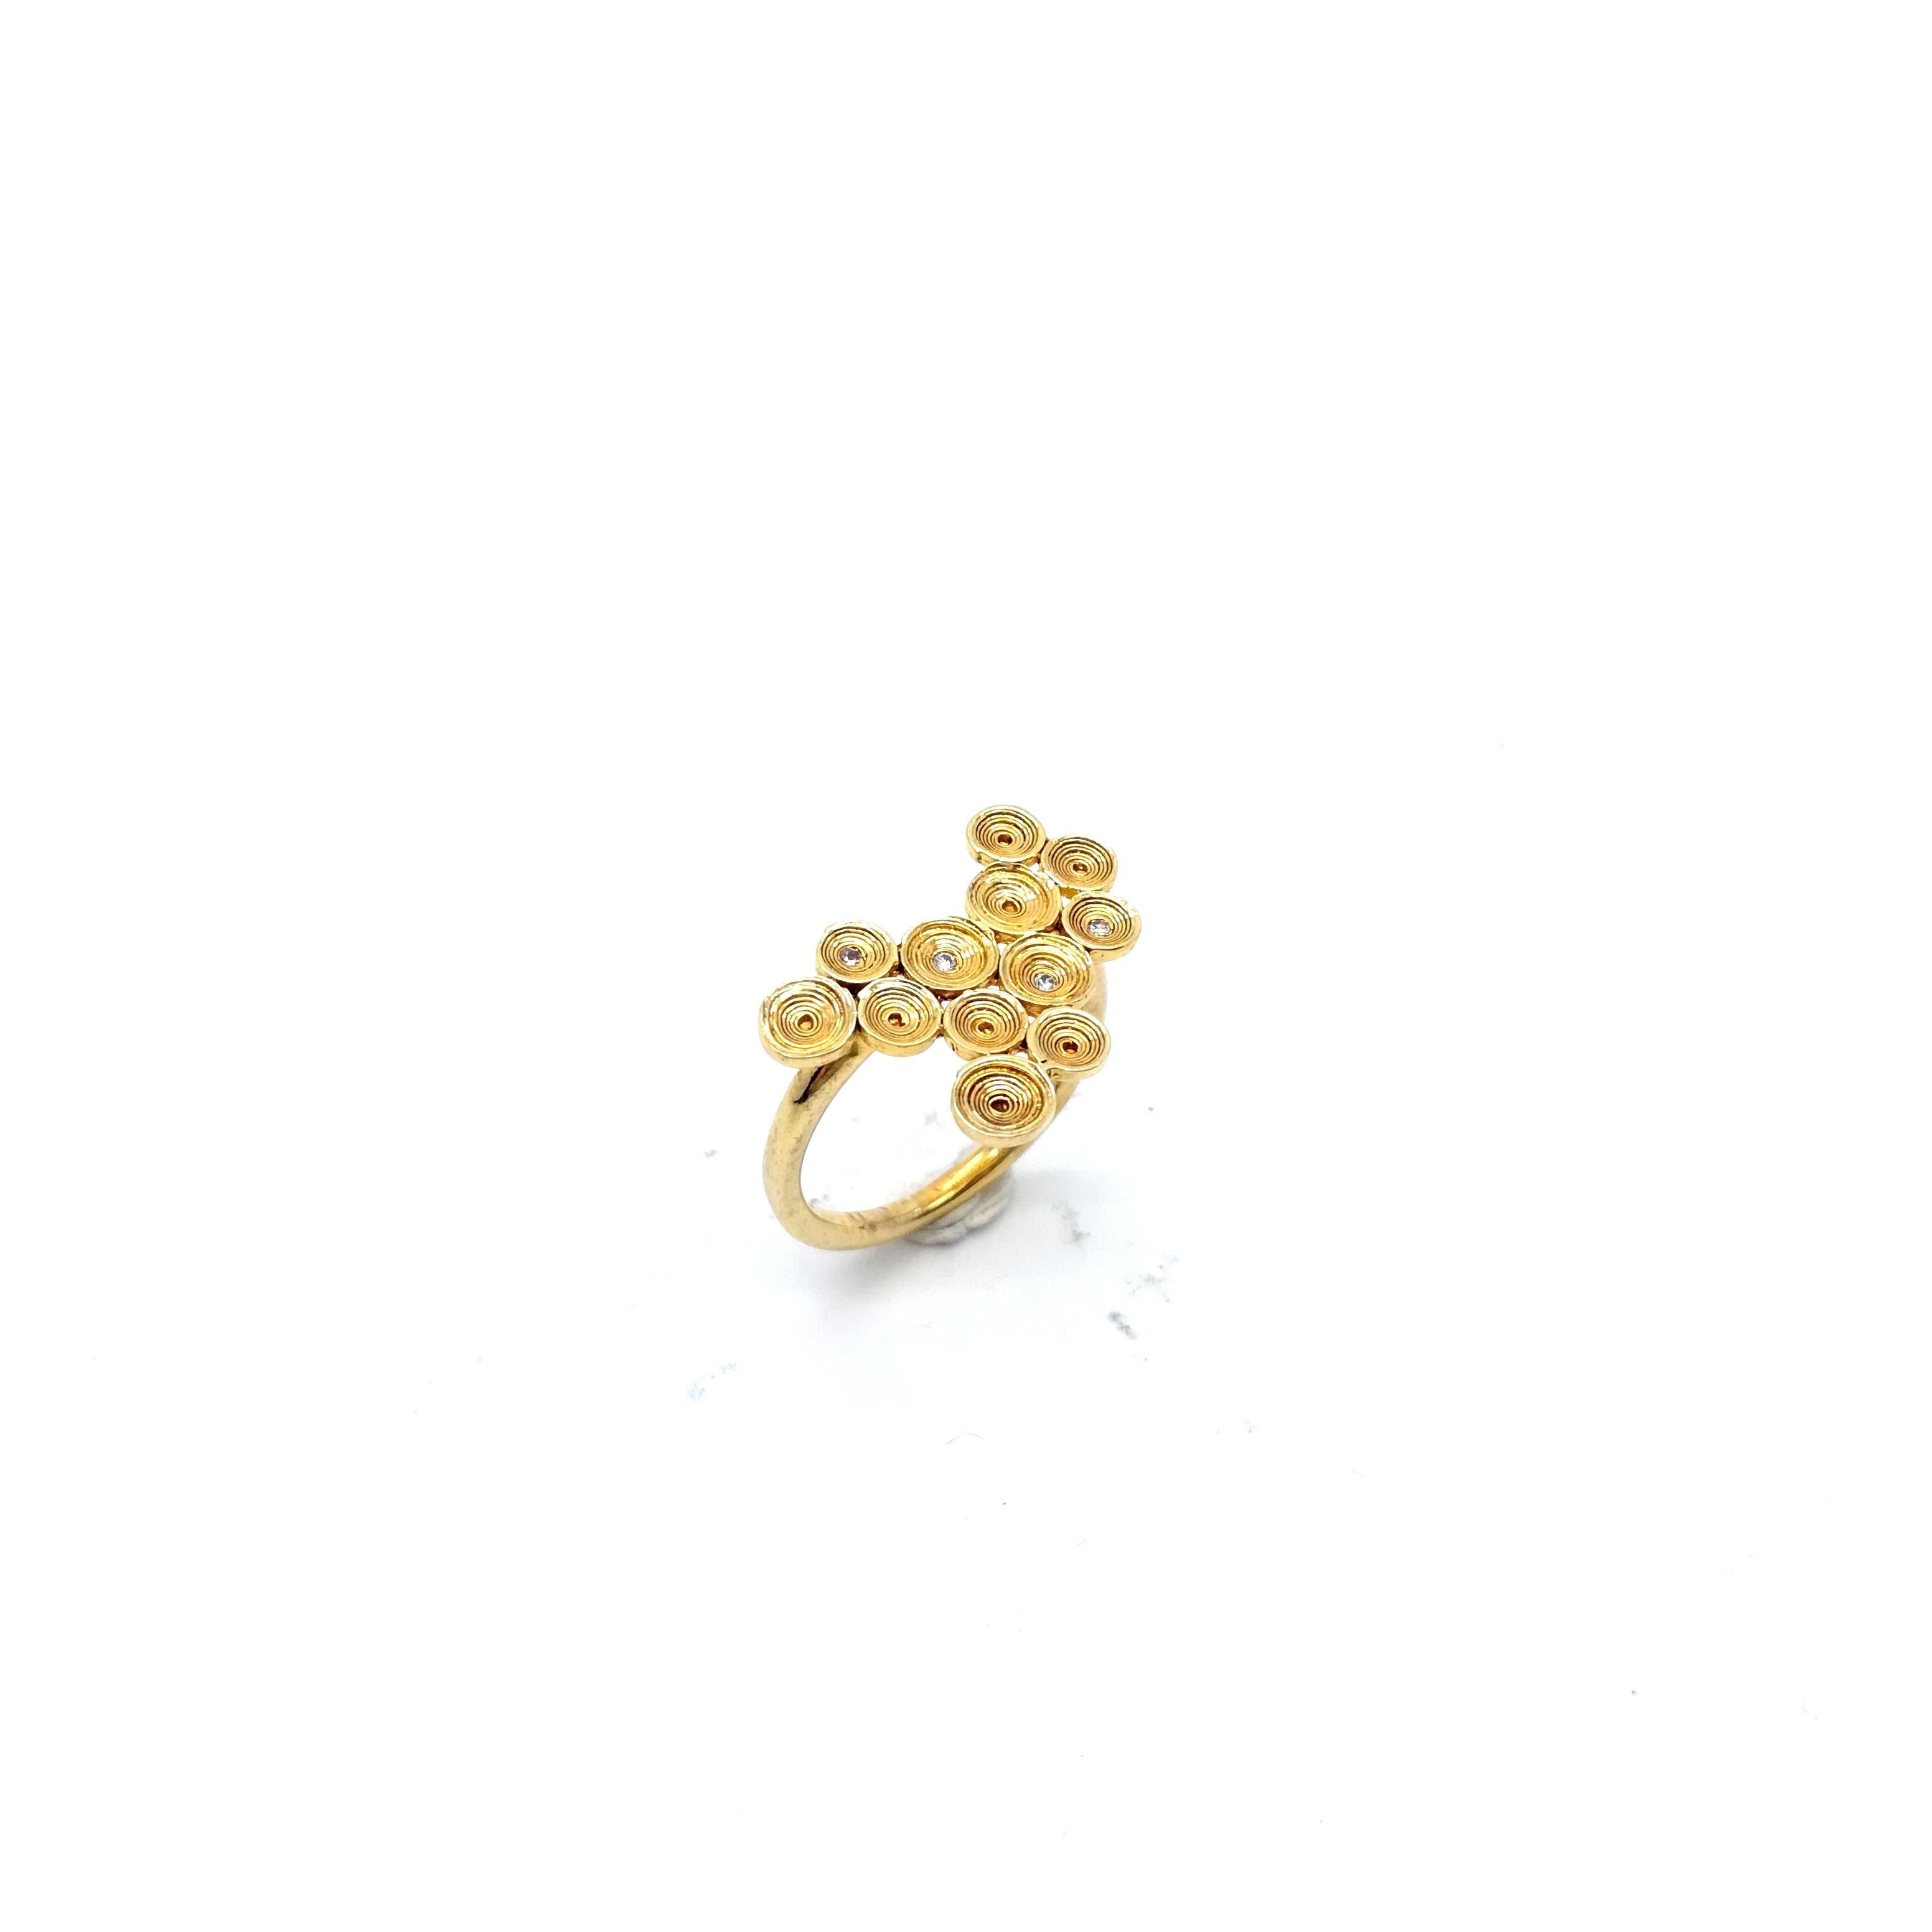 Silver ring 925 goldplated with white synthetic stones